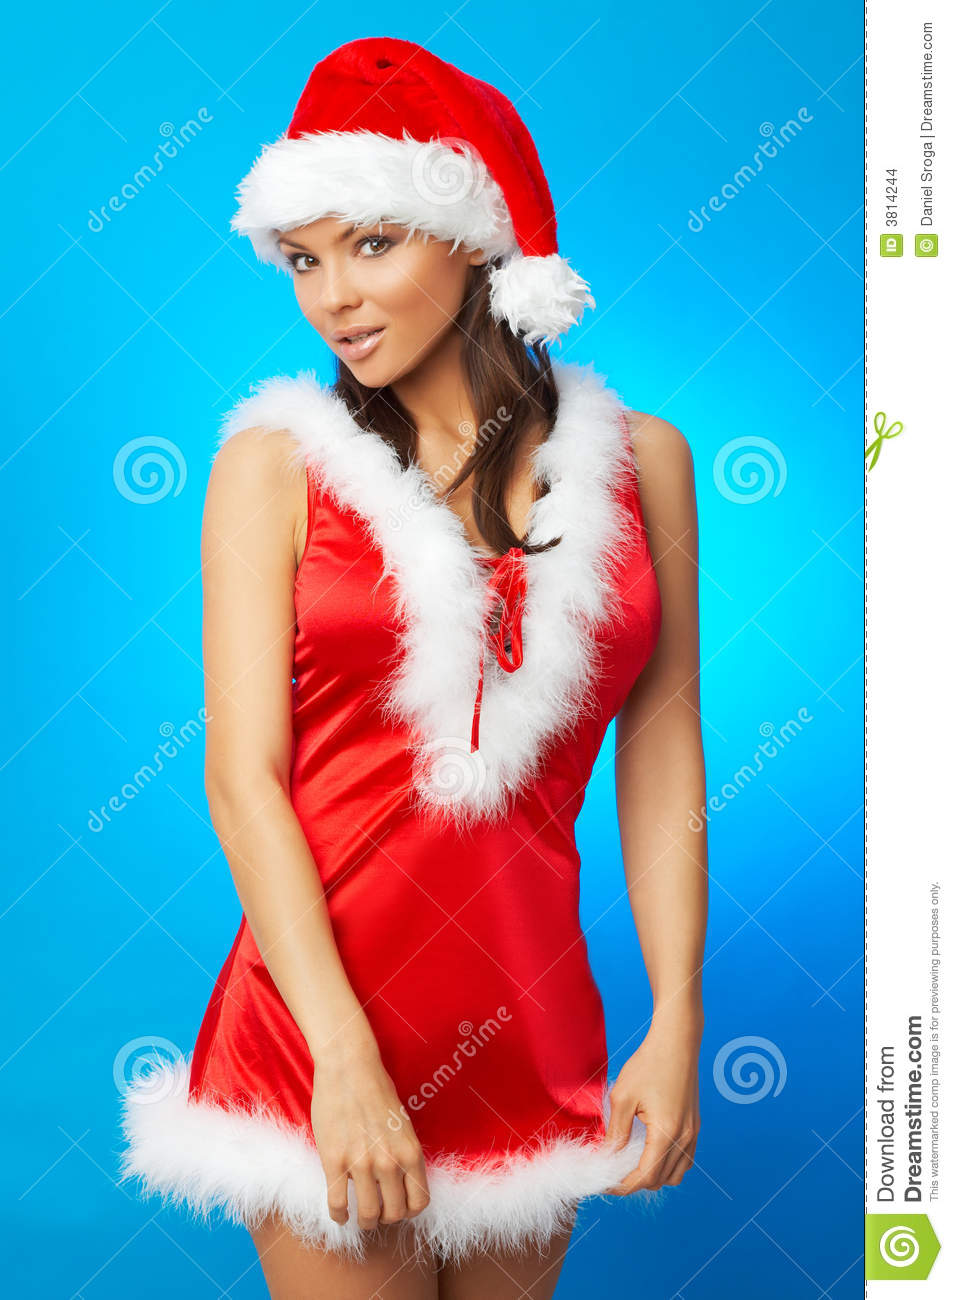 Girl in red xmass dress ootd - 1 5